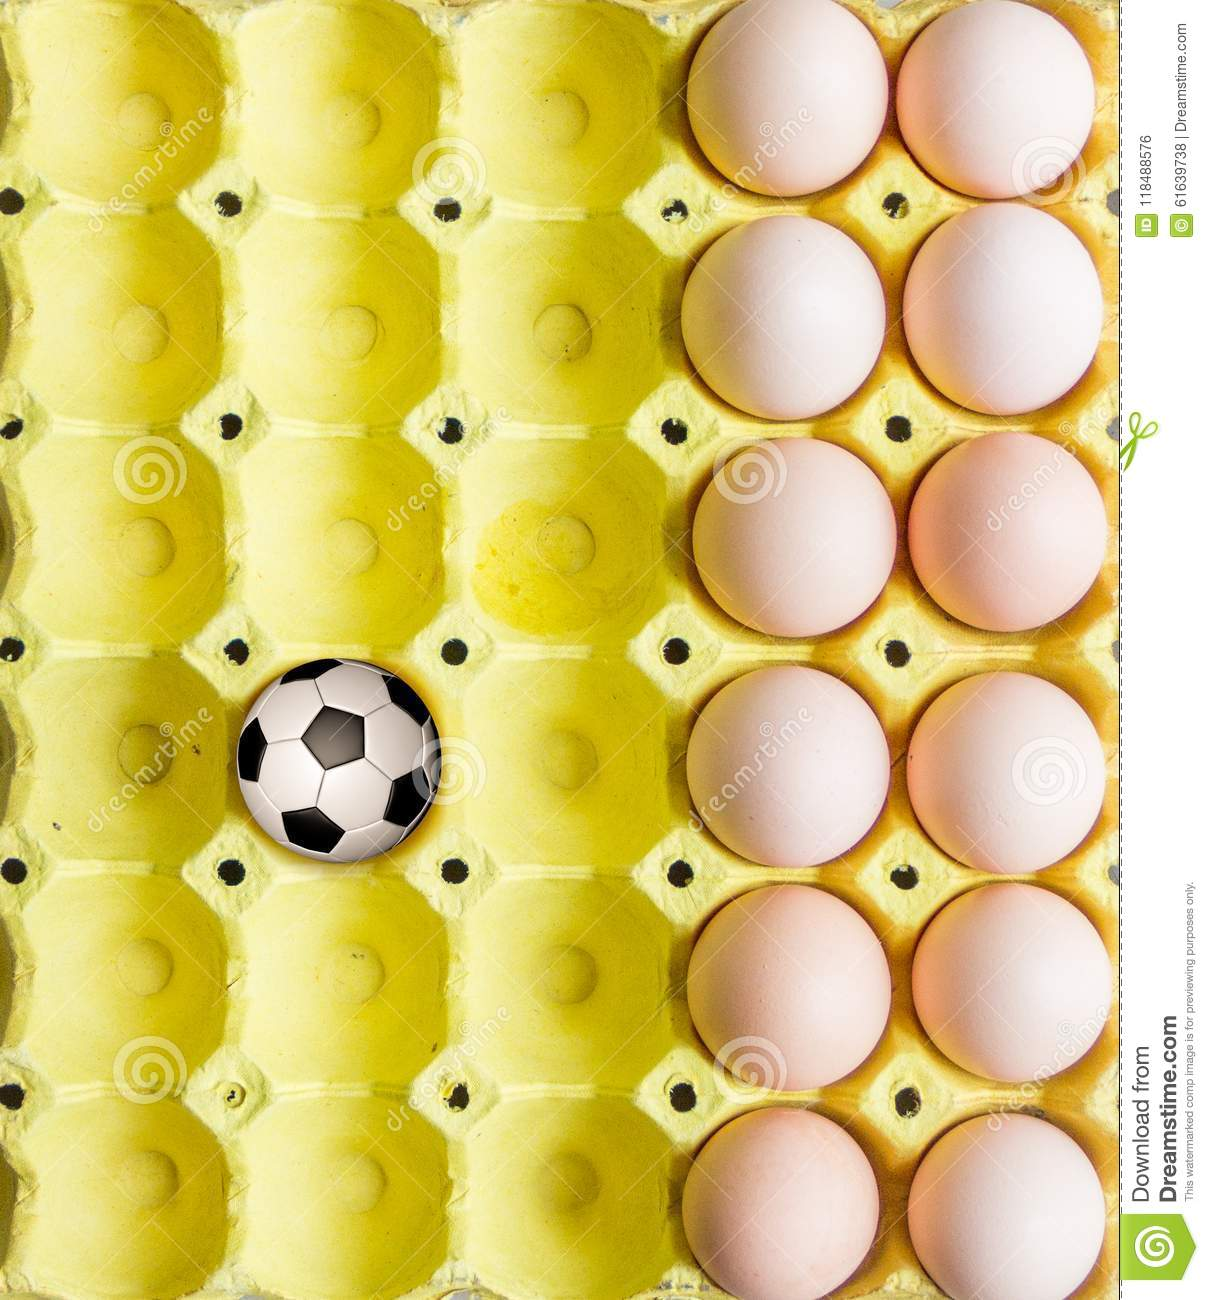 Football in the egg tray